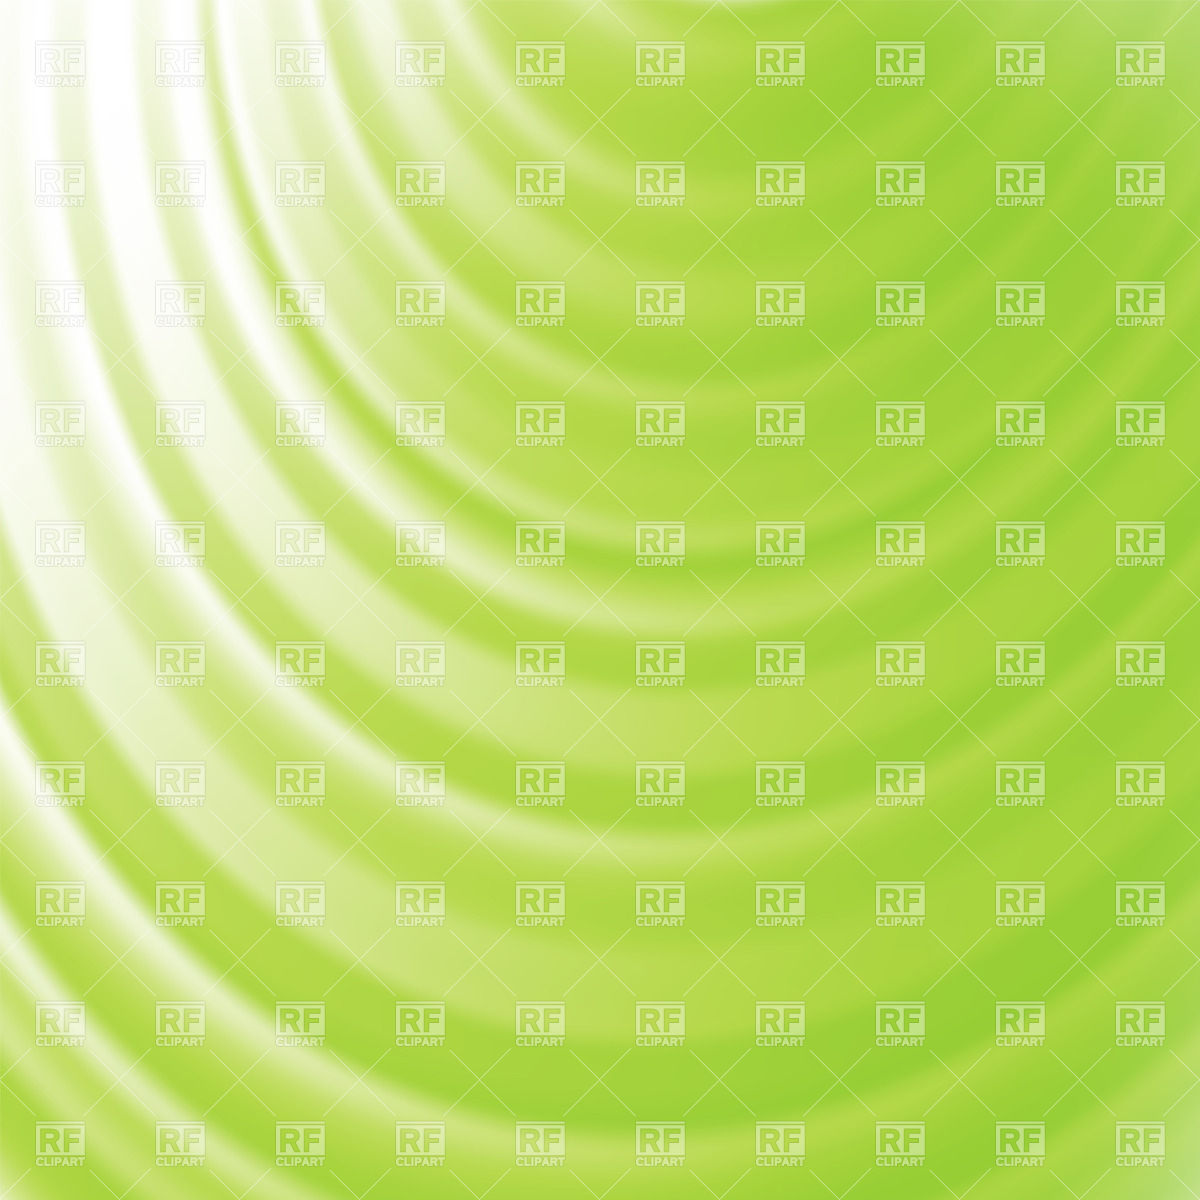 Green abstract background with radial radiance Vector Image #39262.